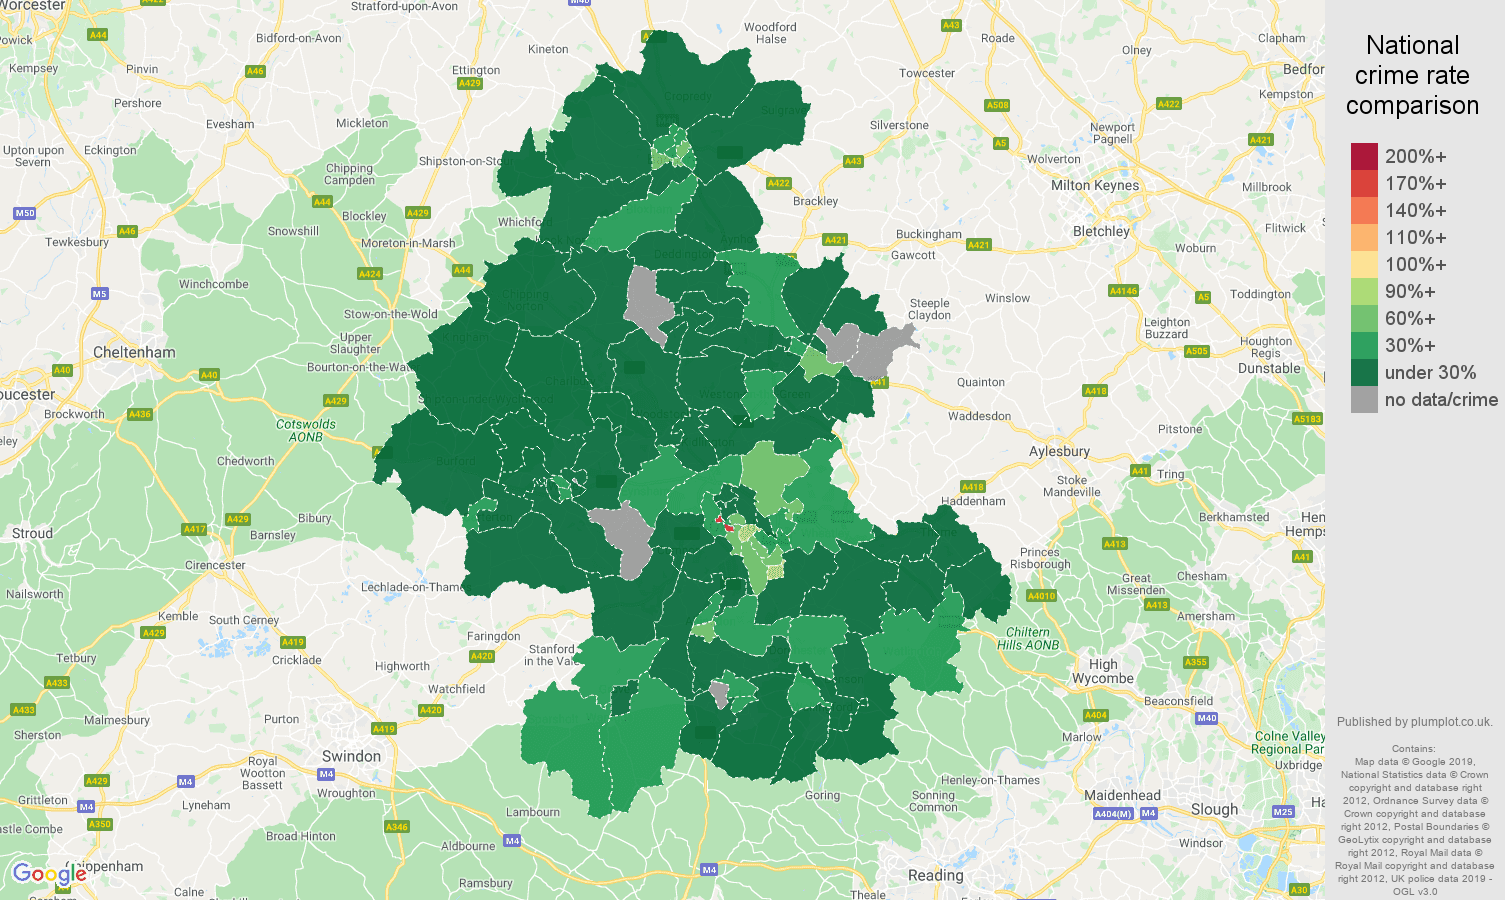 Oxford public order crime rate comparison map